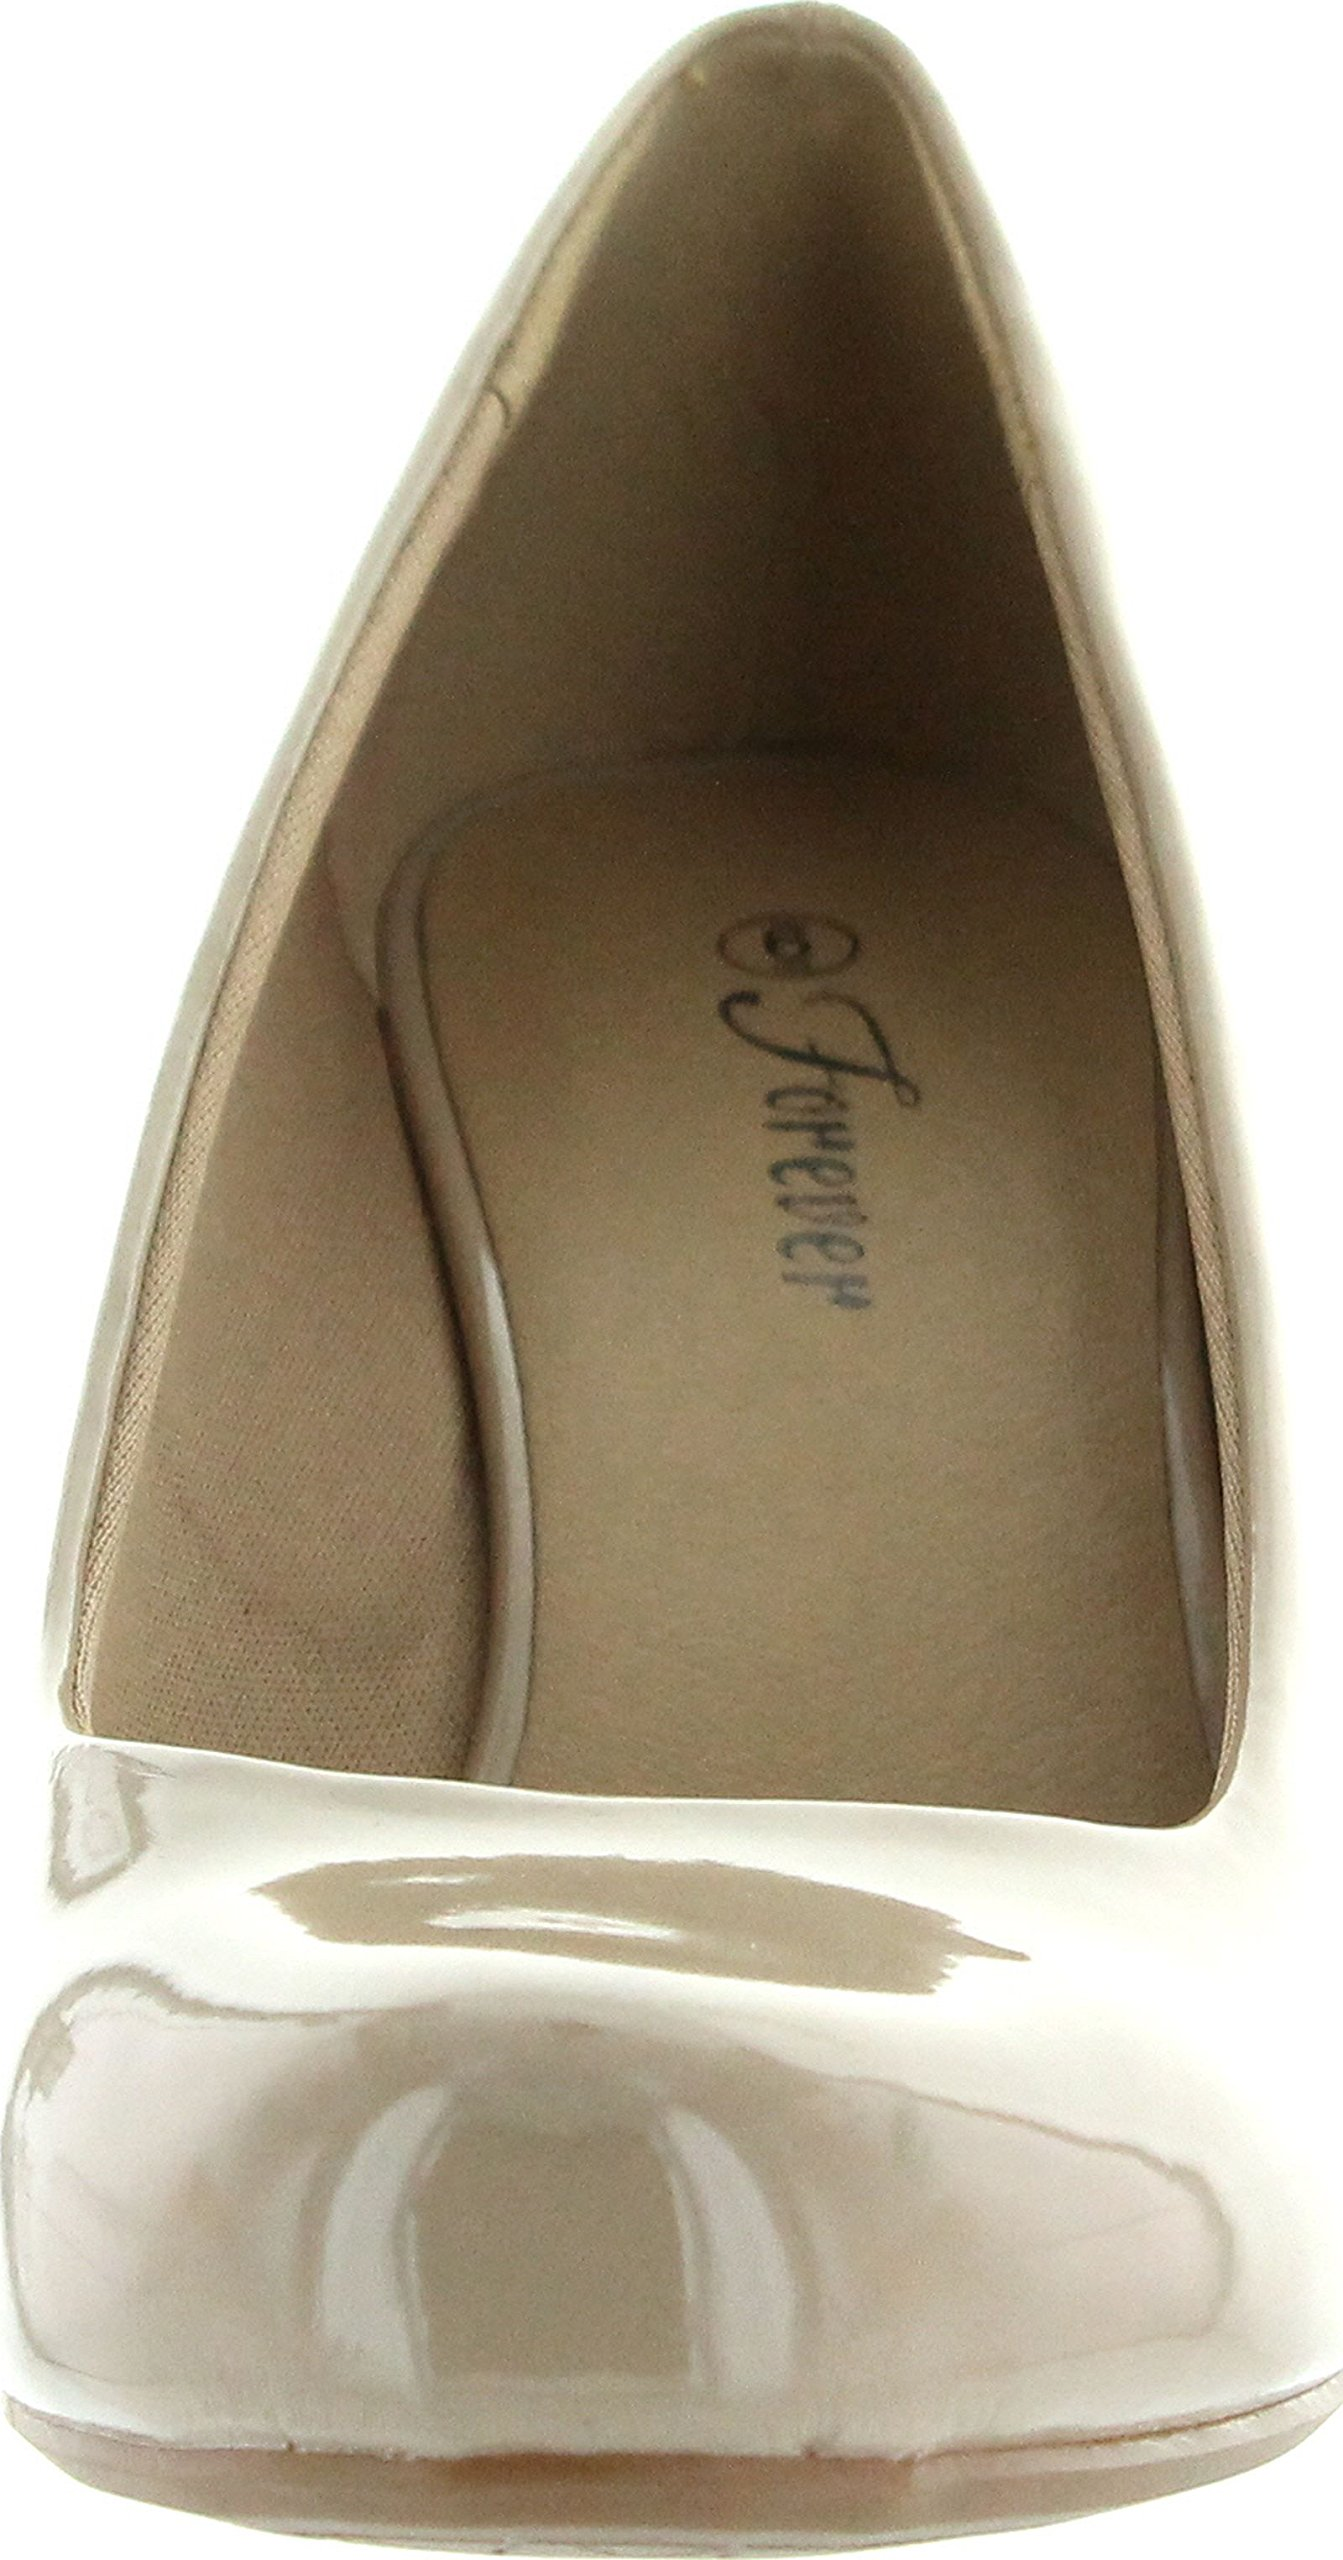 Forever Link Women's DORIS-22 Patent Round Toe Wedge Pumps,7.5 B(M) US,Beige by Forever (Image #3)